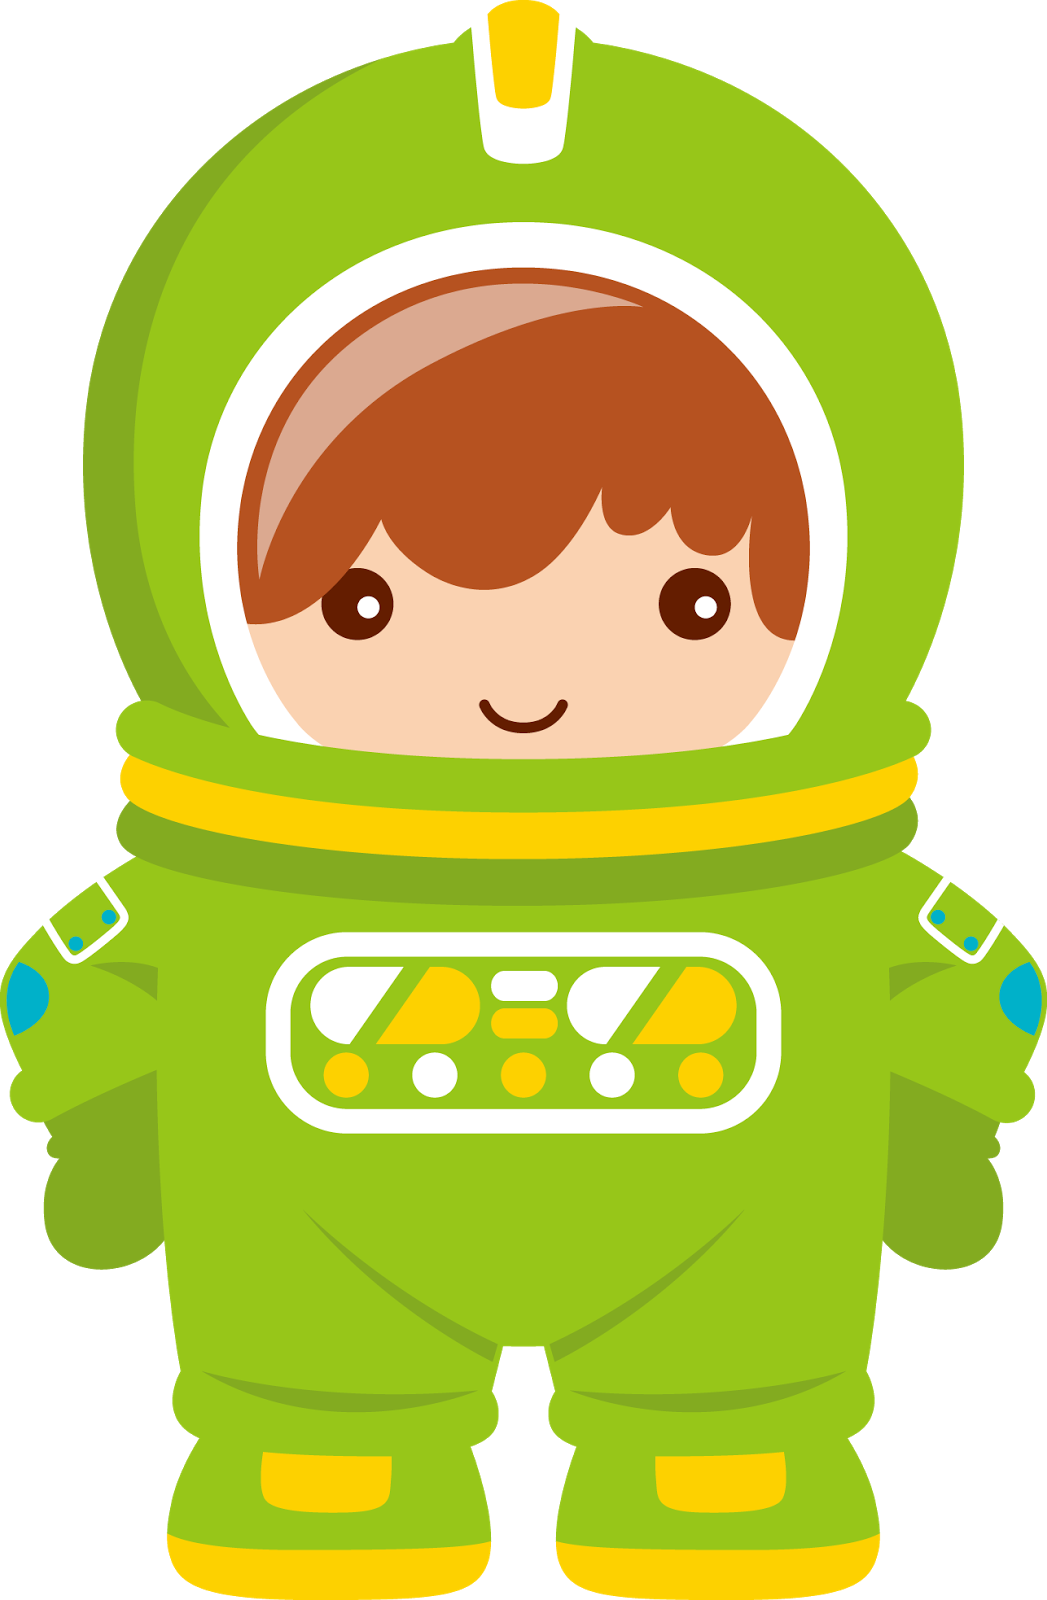 Astronauts and spaceships how. Spaceship clipart aliens love underpants